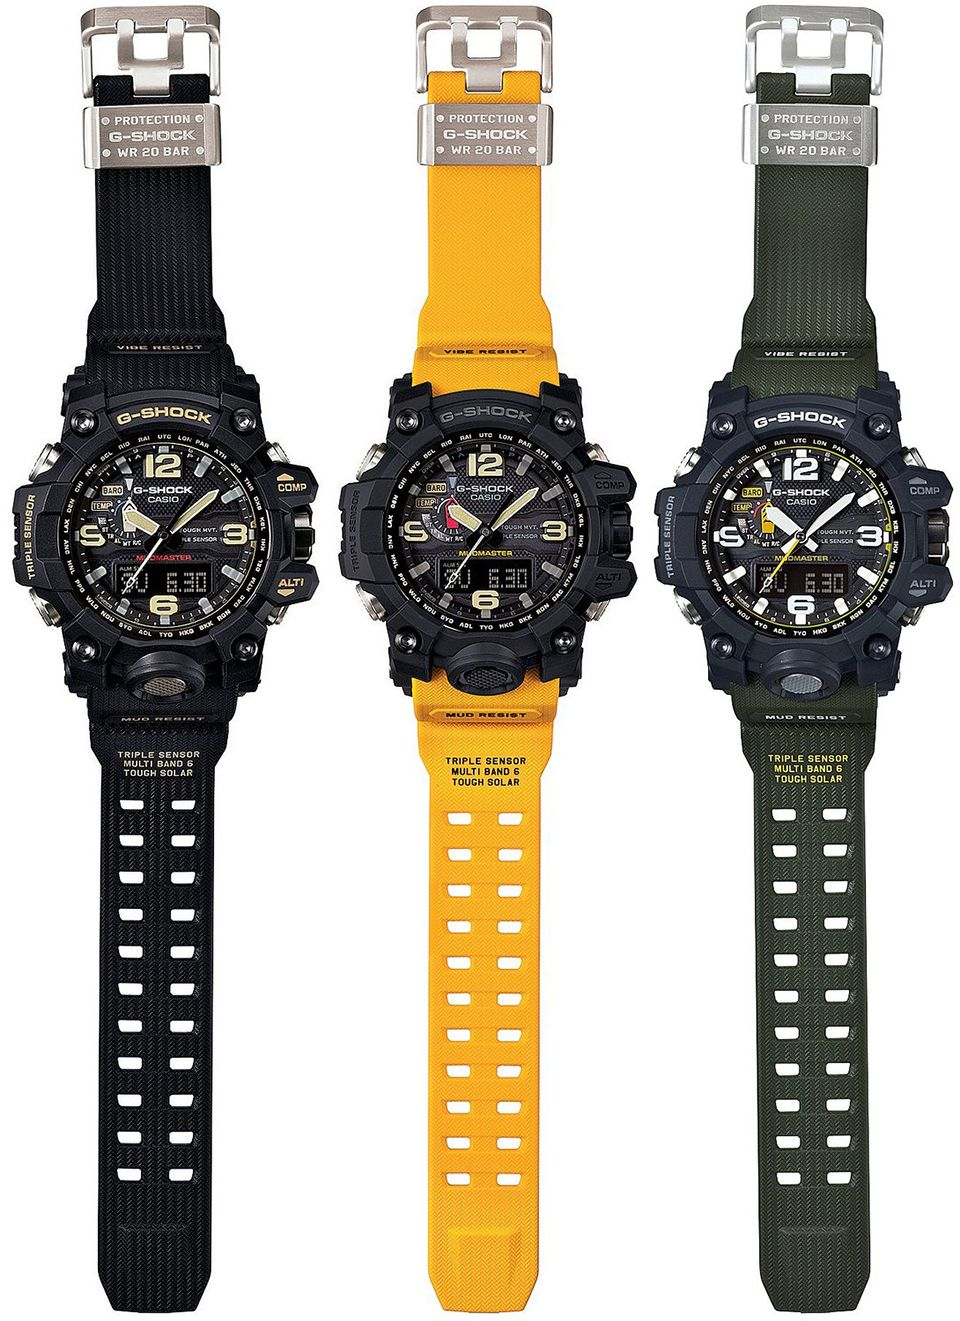 Casio G Shock Mudmaster G Shock Mudmaster Casio G Shock Watches G Shock